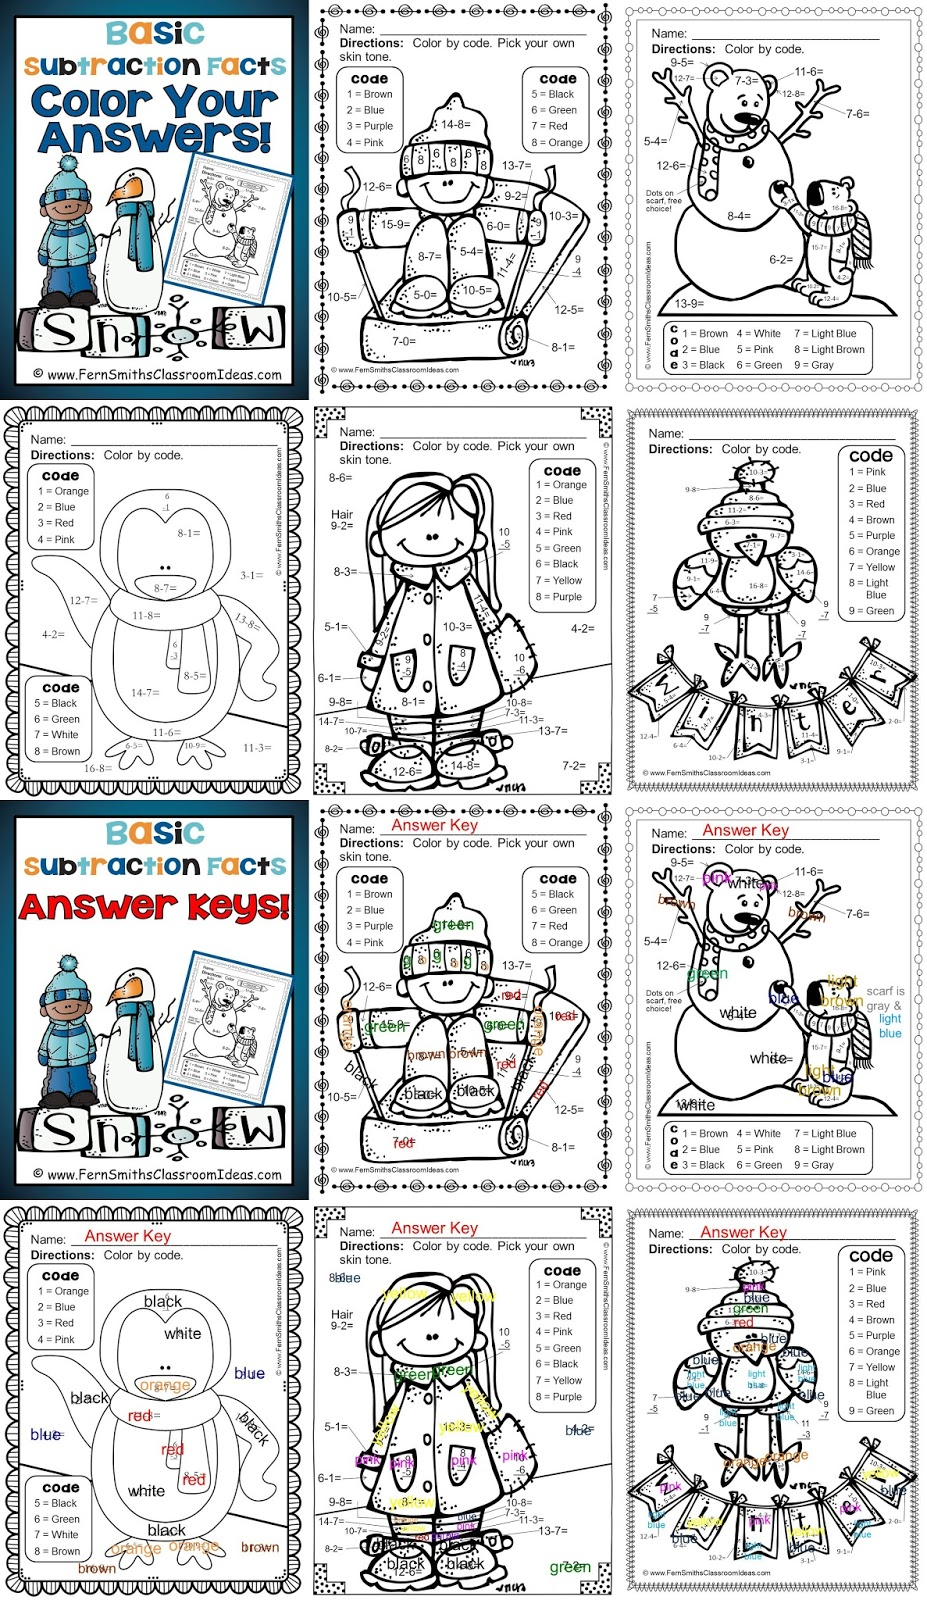 Winter Fun! Basic Subtraction Facts